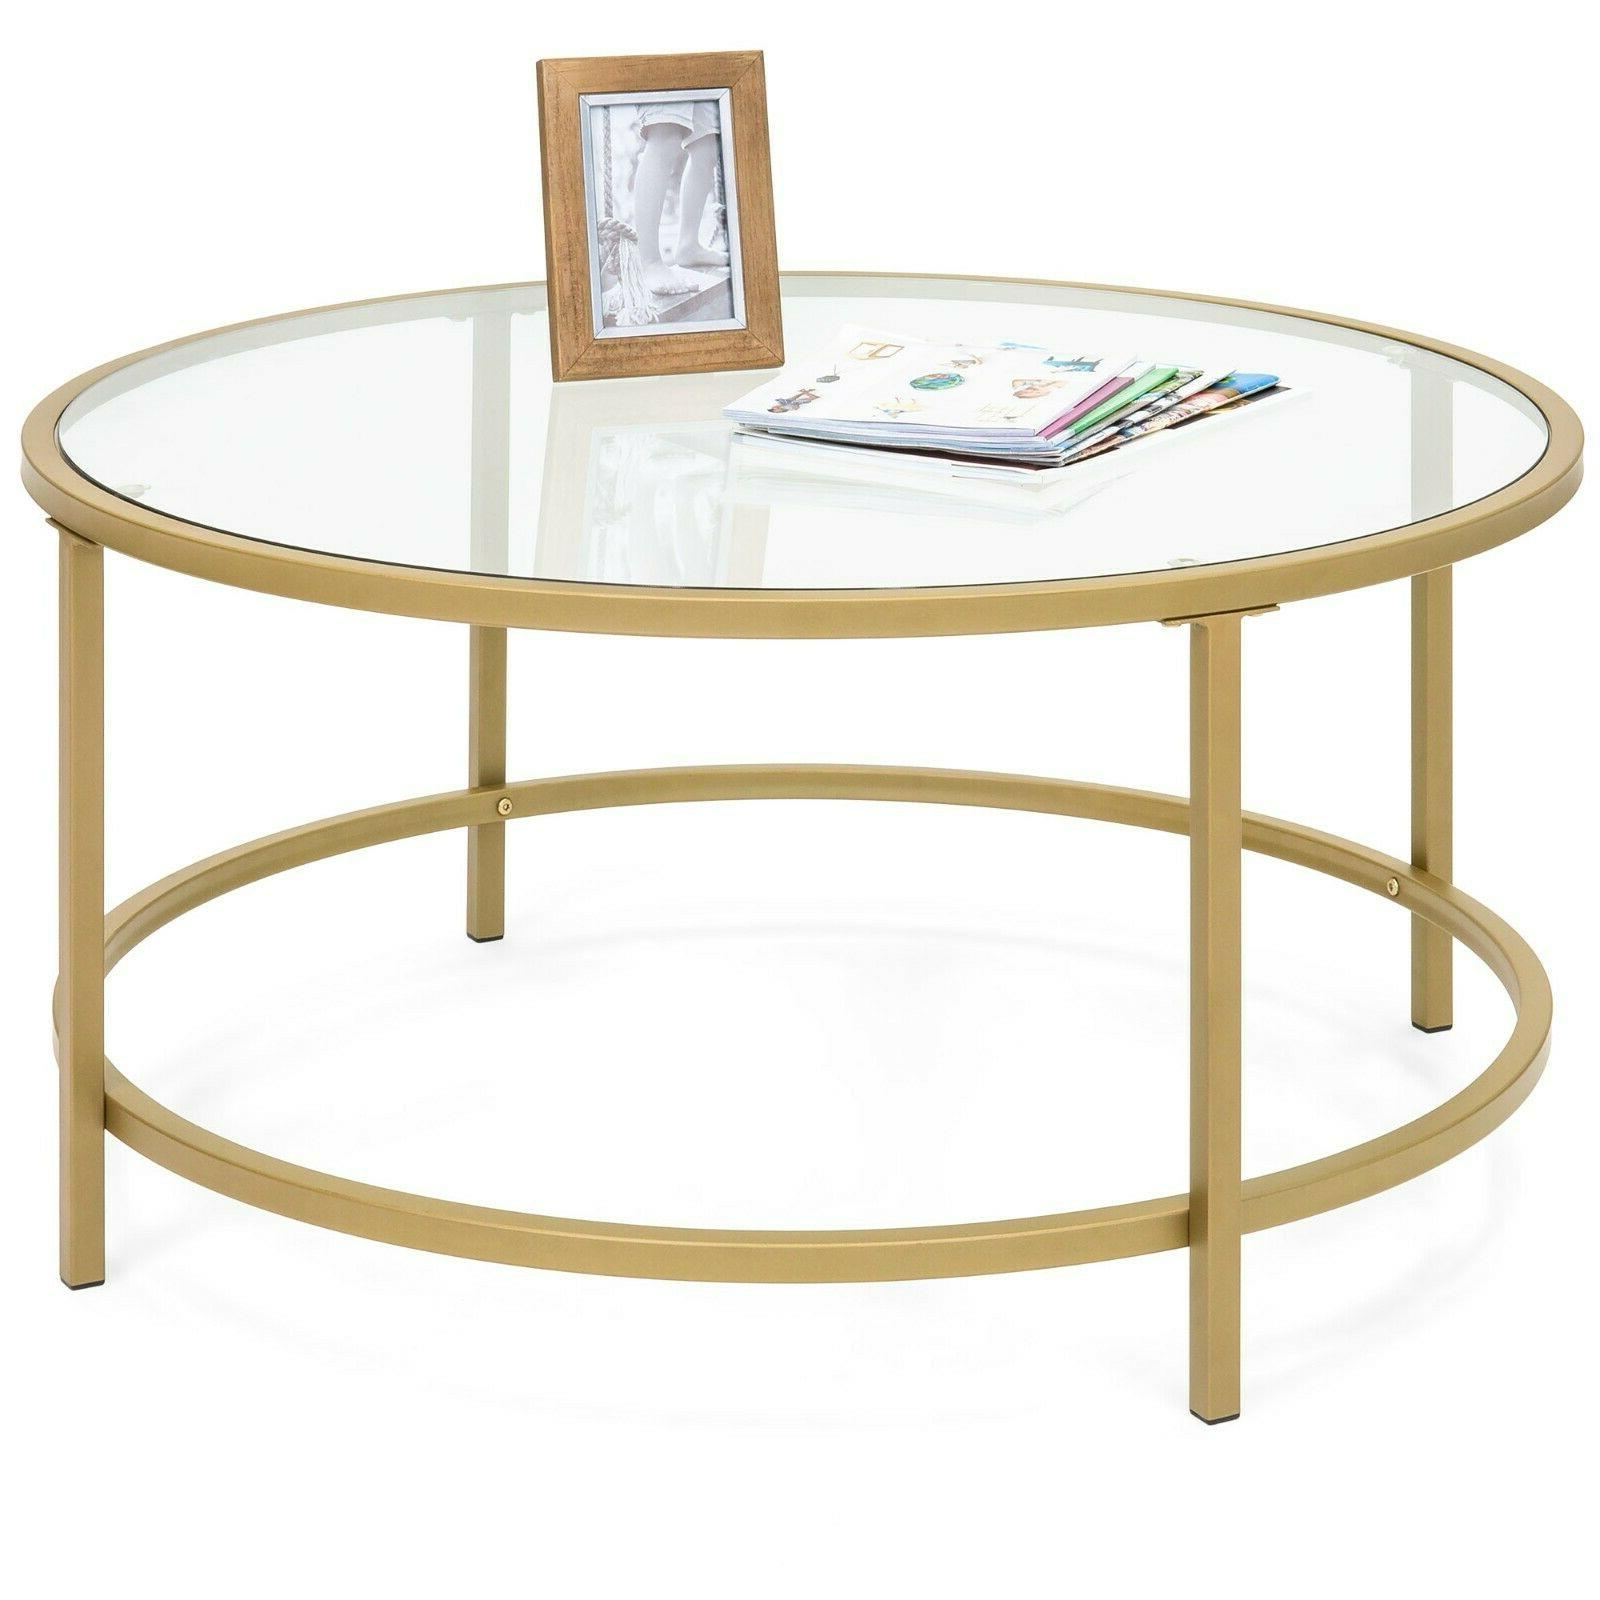 36in round tempered glass coffee table w